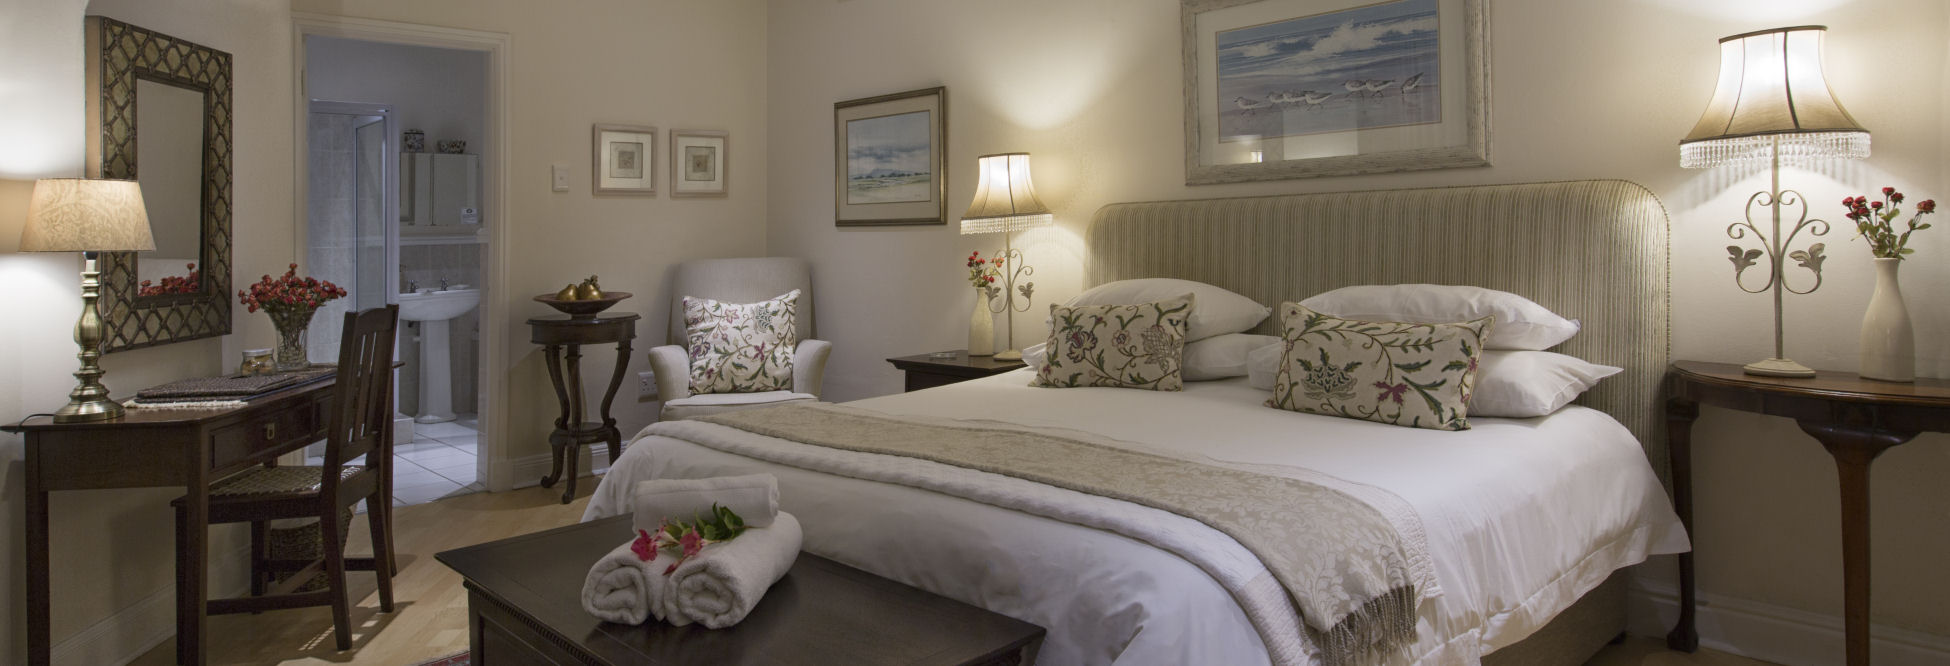 Summerstrand Guest House Accommodation, Port Elizabeth